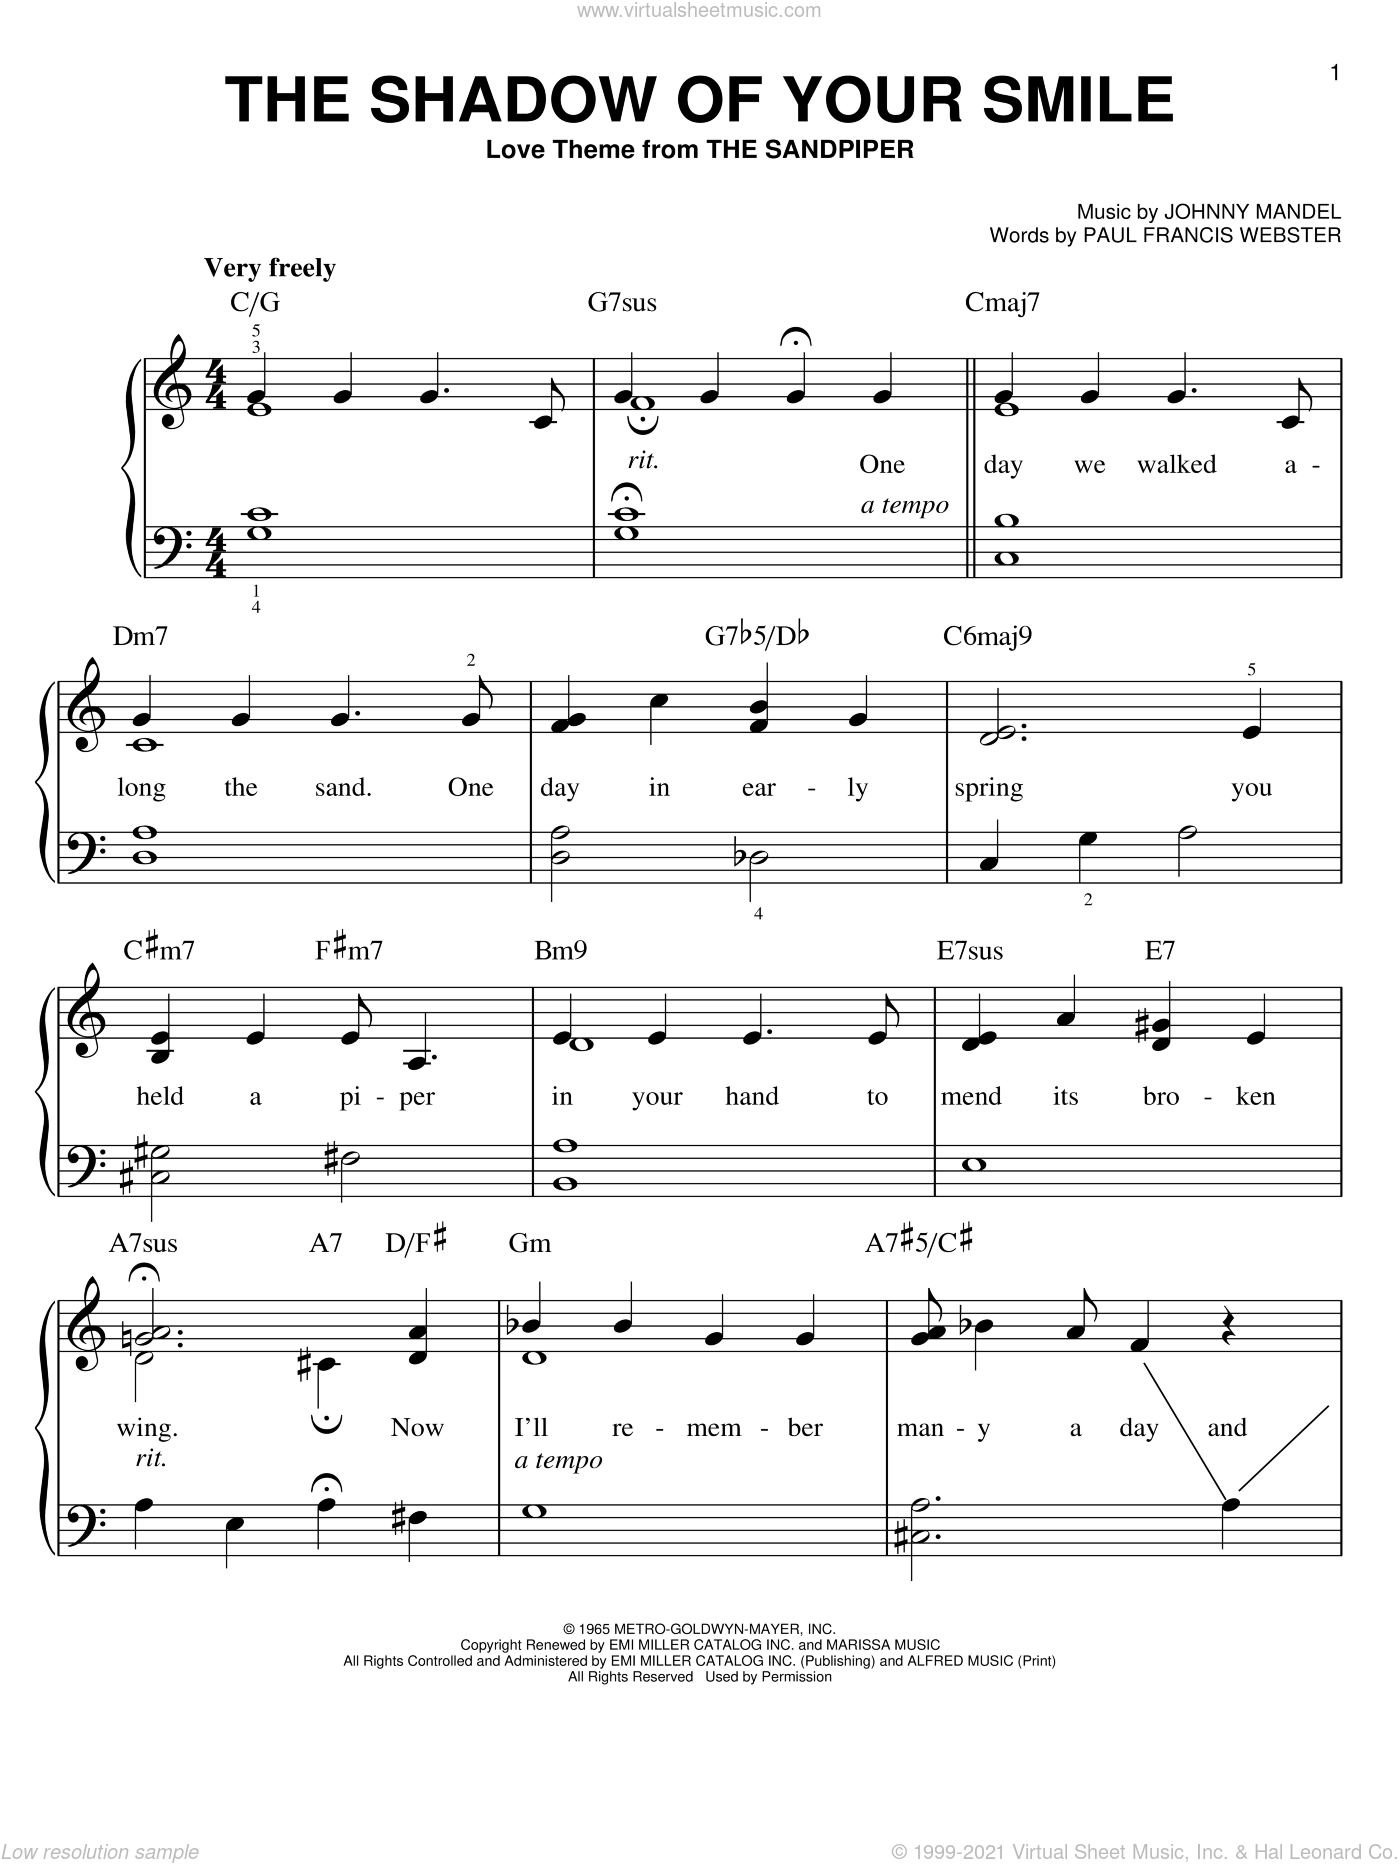 The Shadow Of Your Smile sheet music for piano solo by Johnny Mandel and Paul Francis Webster, easy skill level